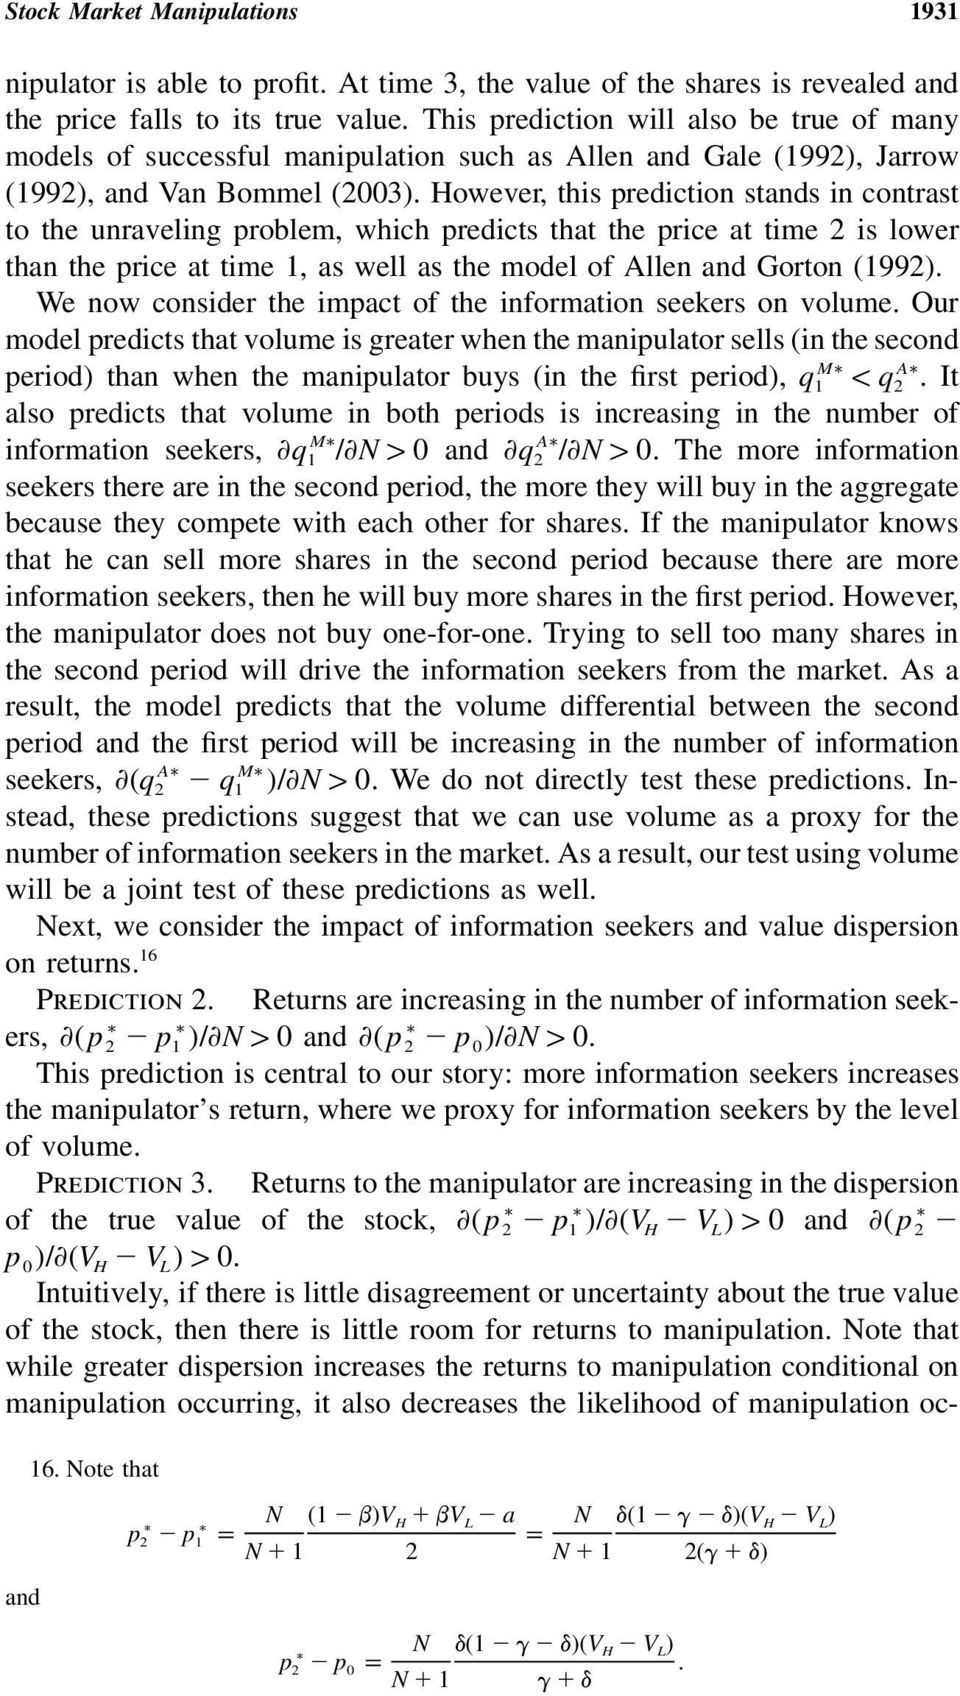 However, this prediction stands in contrast to the unraveling problem, which predicts that the price at time 2 is lower than the price at time 1, as well as the model of Allen and Gorton (1992).